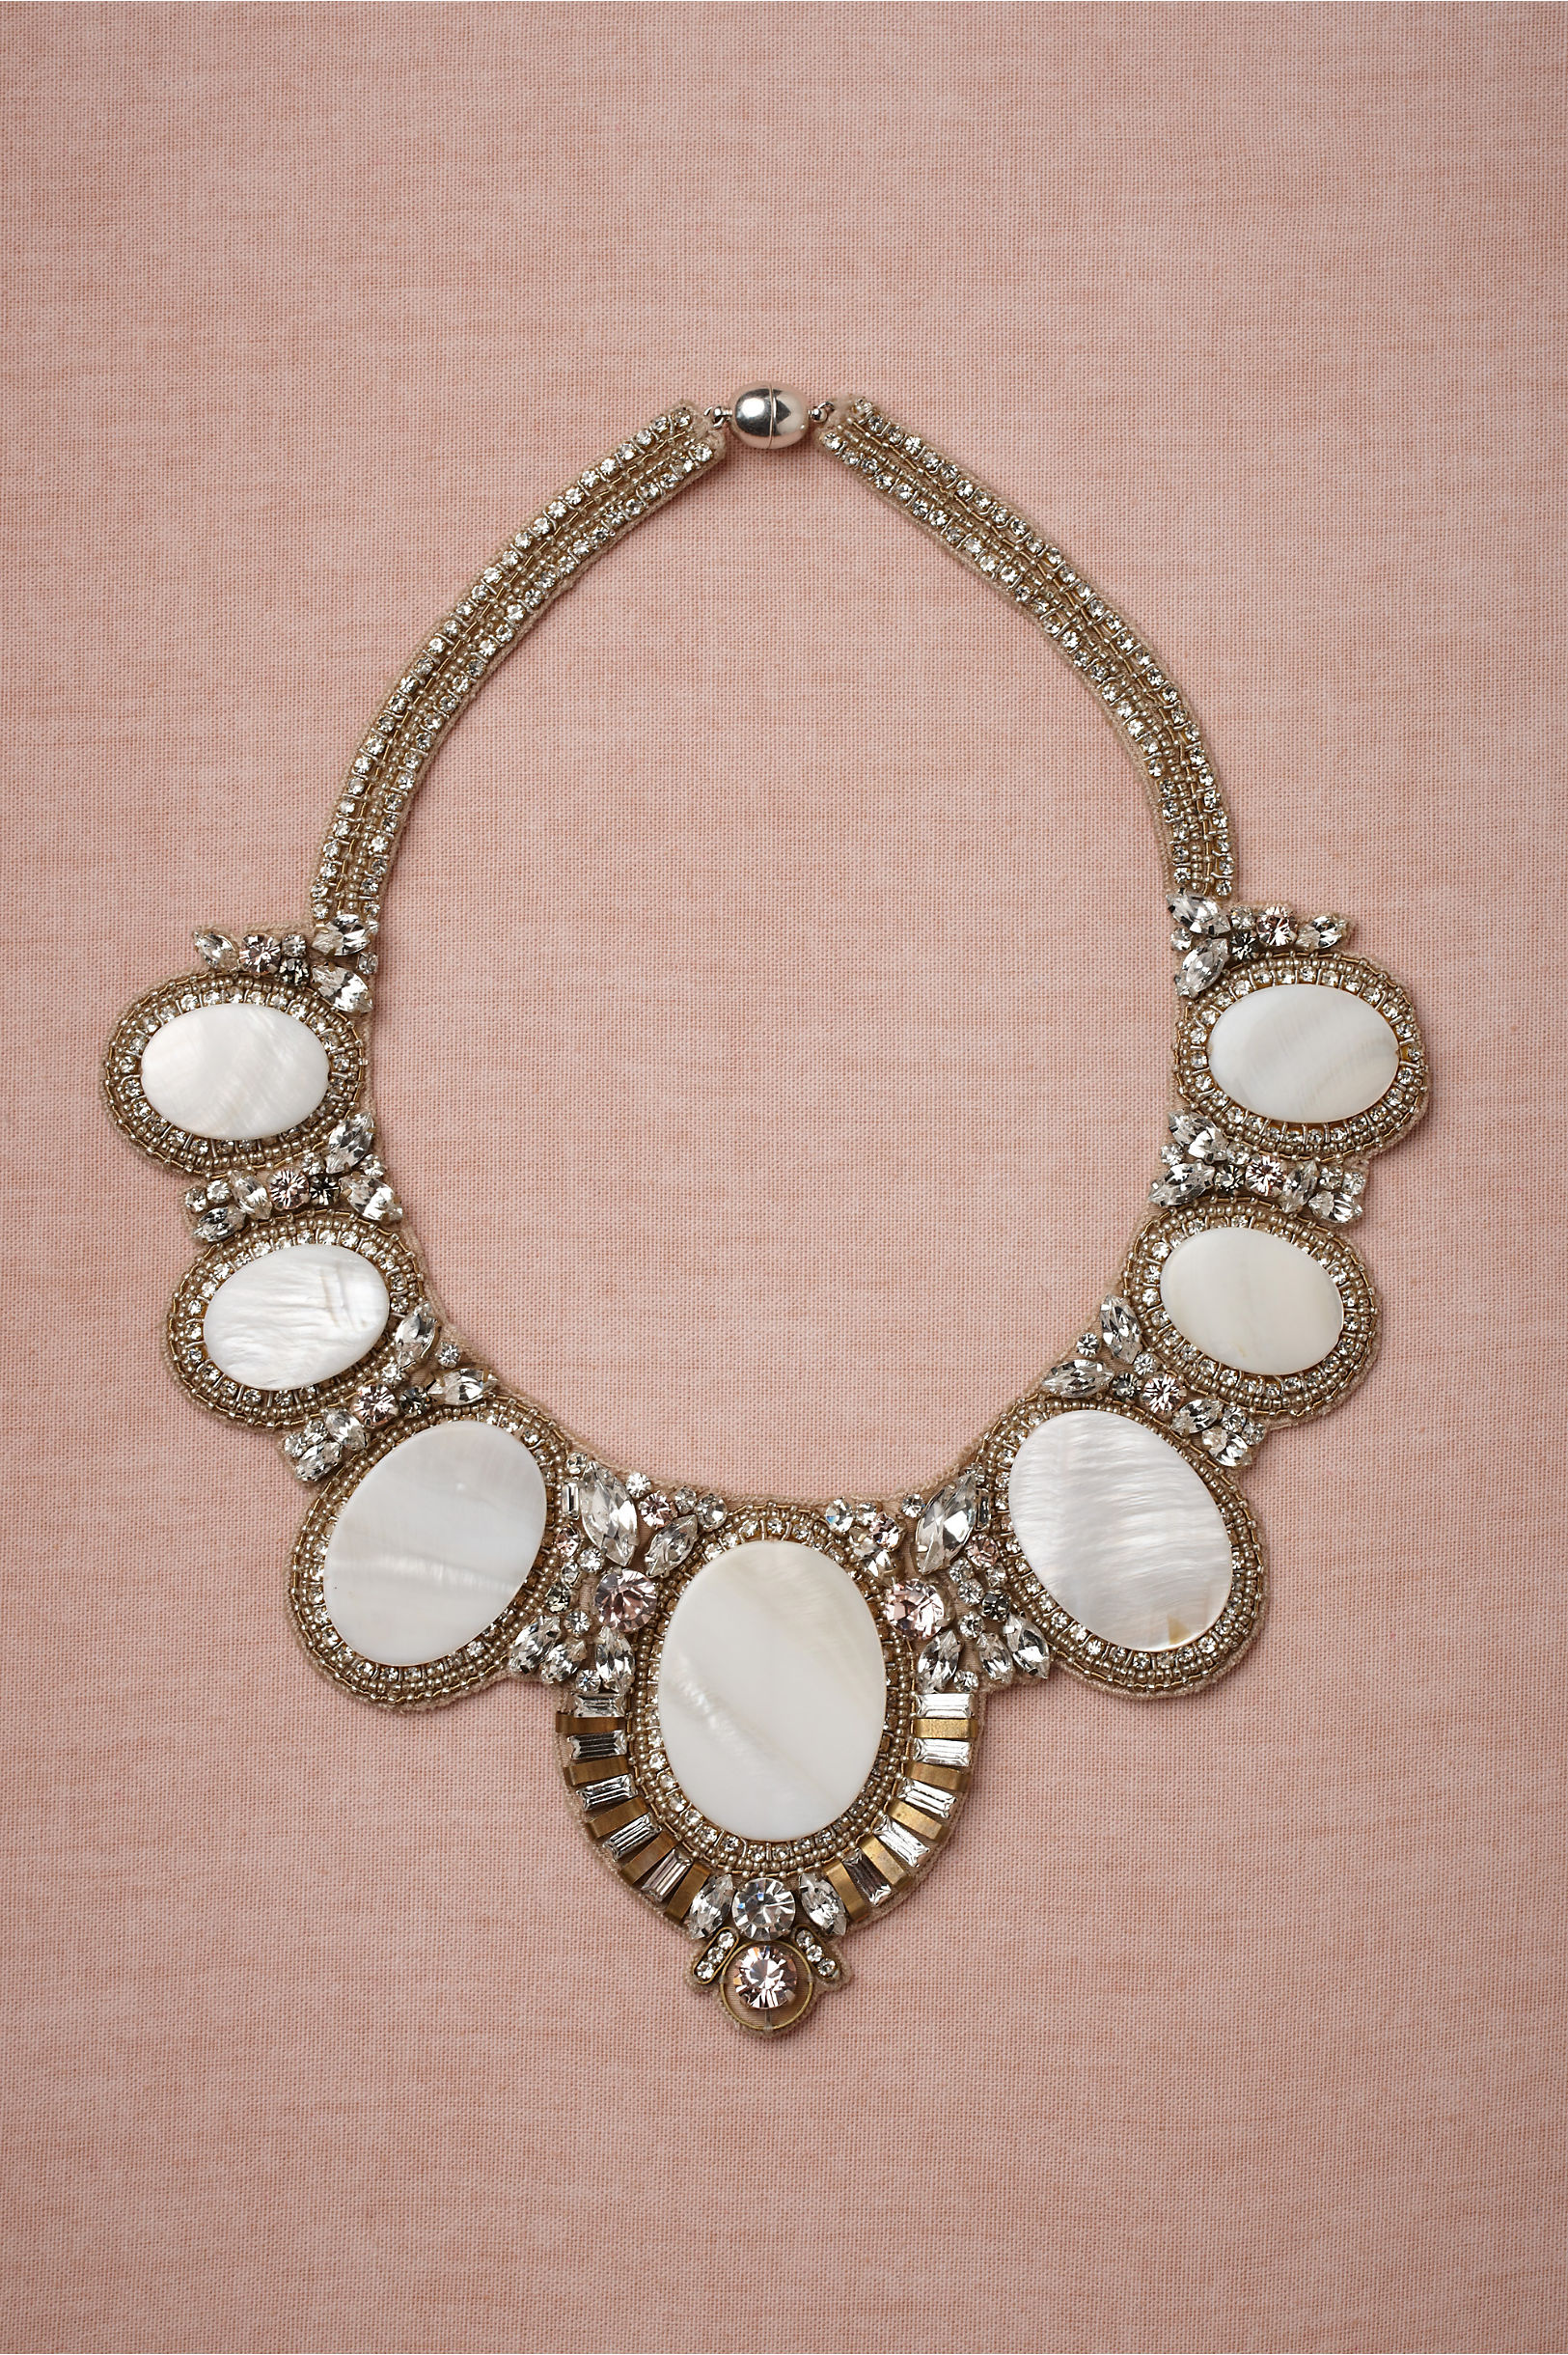 Bhldn-bridal-gowns-wedding-jewelry-statement-necklace-1.original